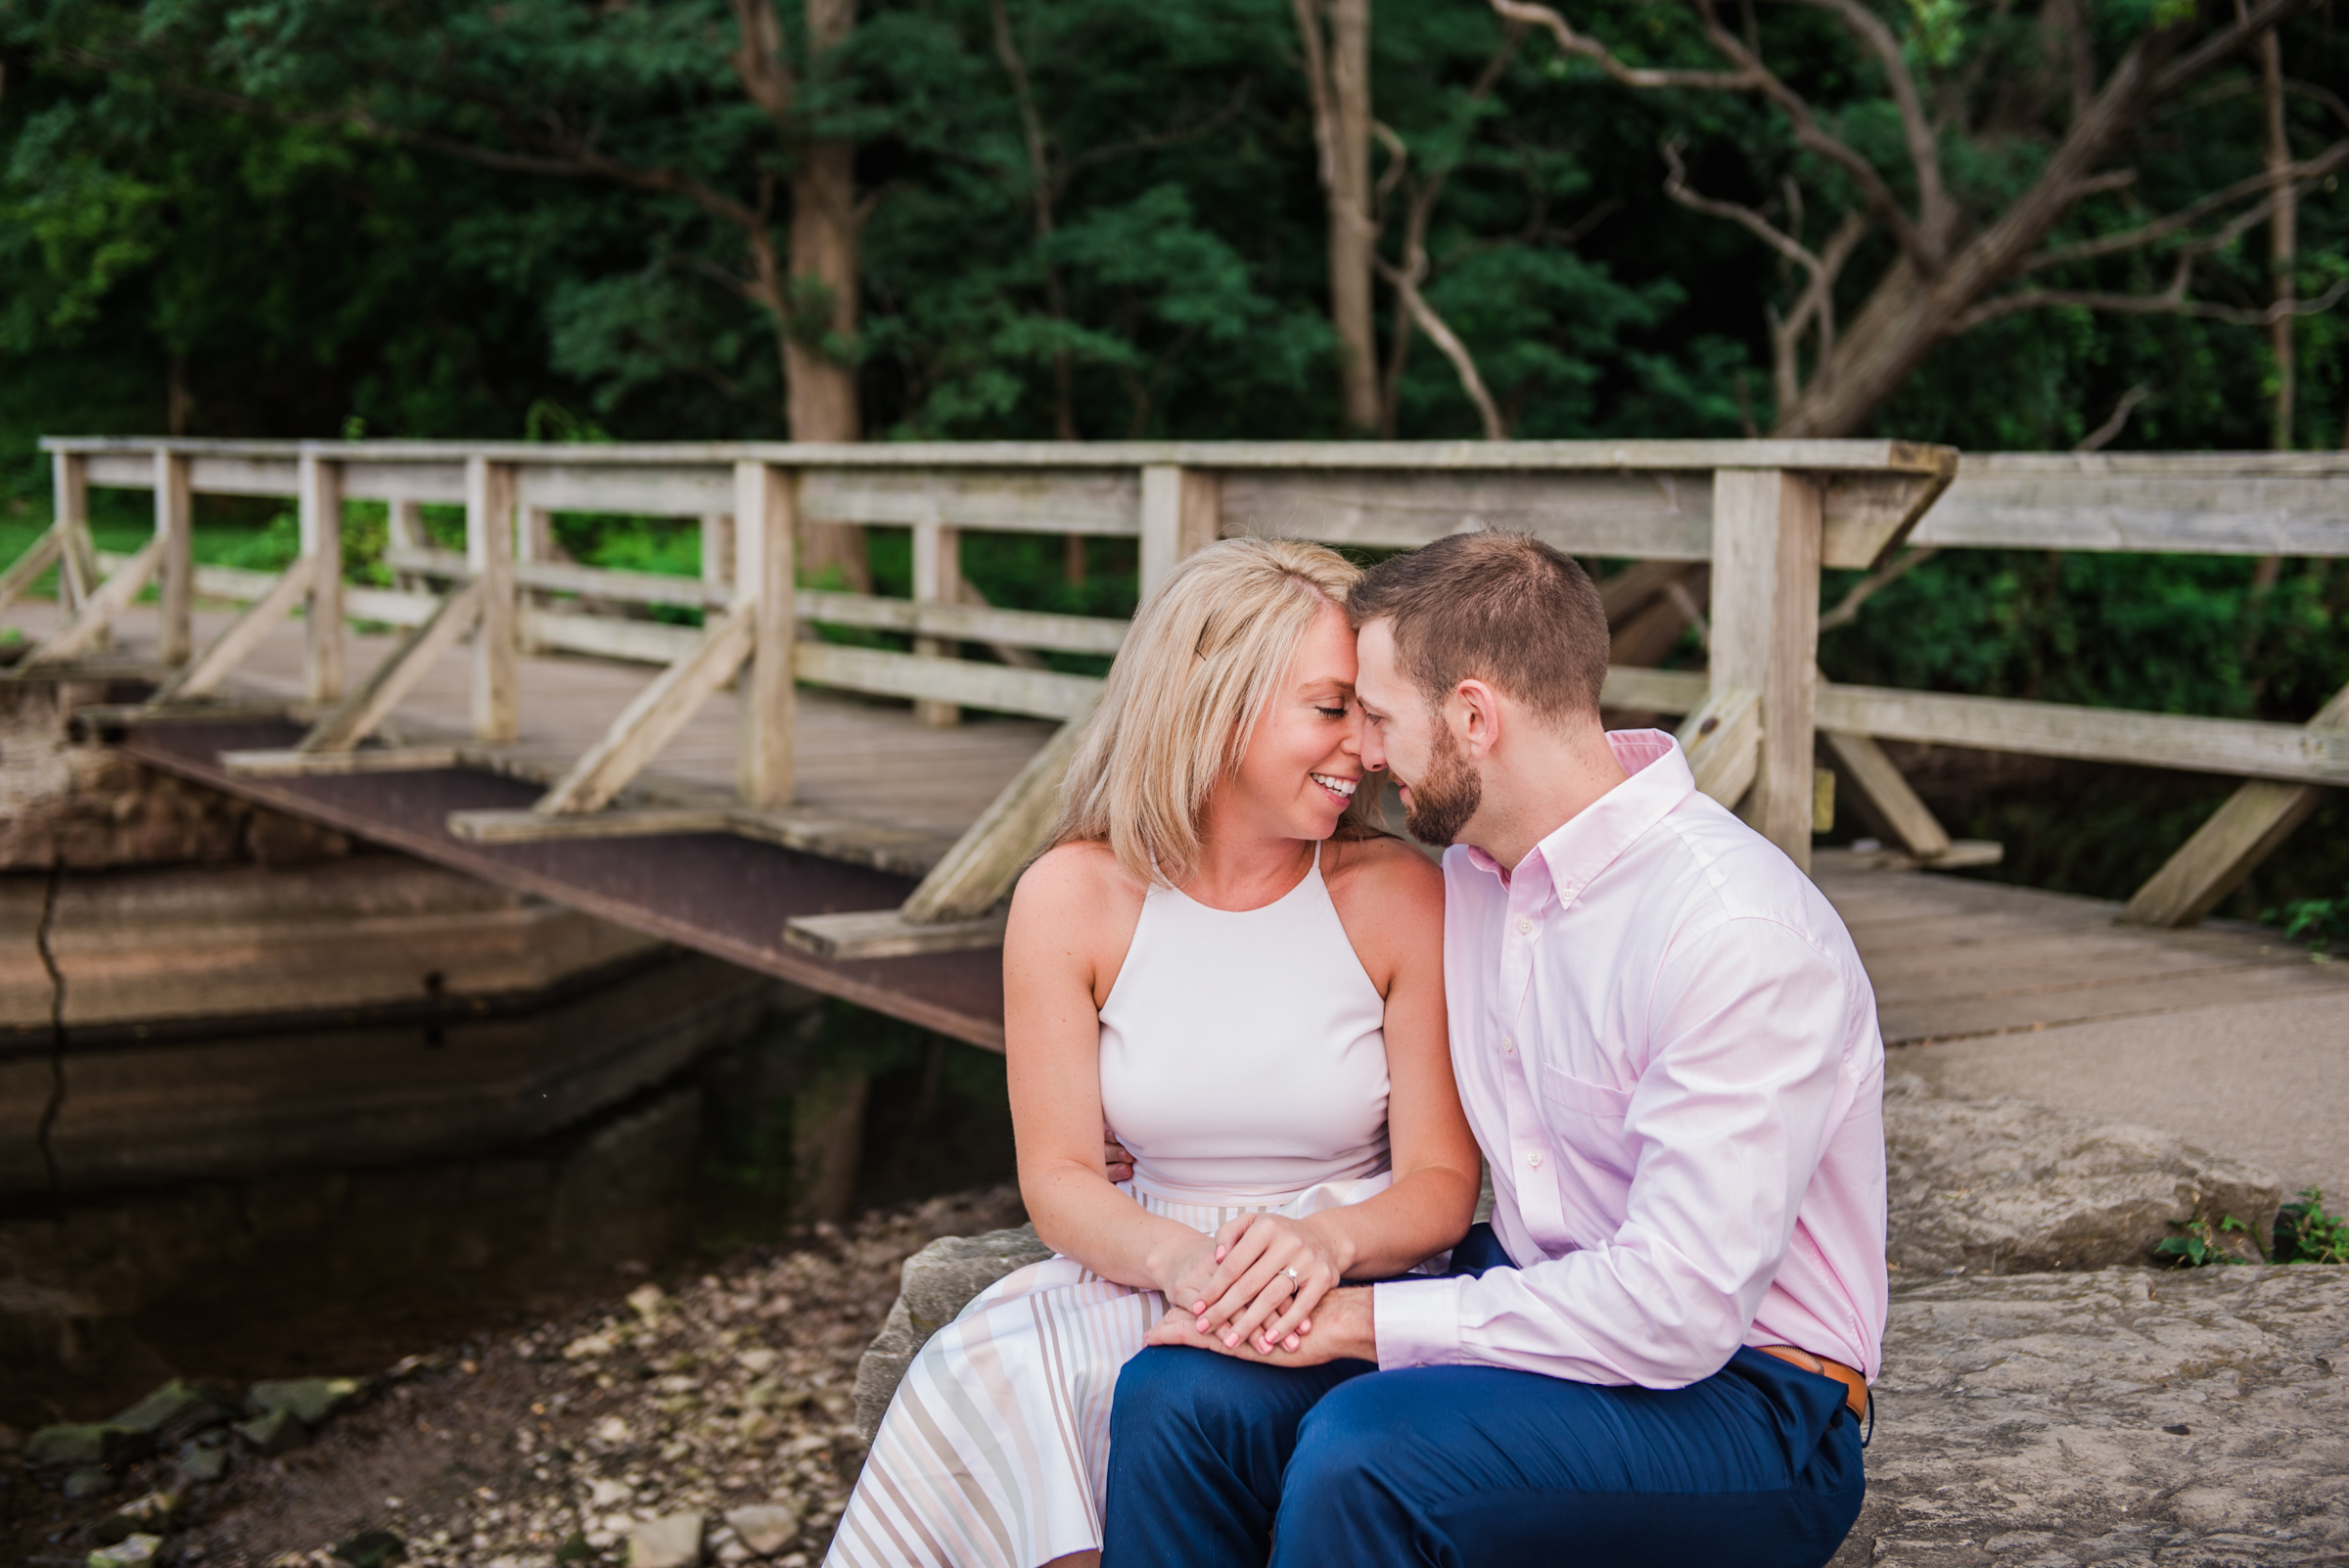 Webster_Park_Rochester_Engagement_Session_JILL_STUDIO_Rochester_NY_Photographer_DSC_9223.jpg